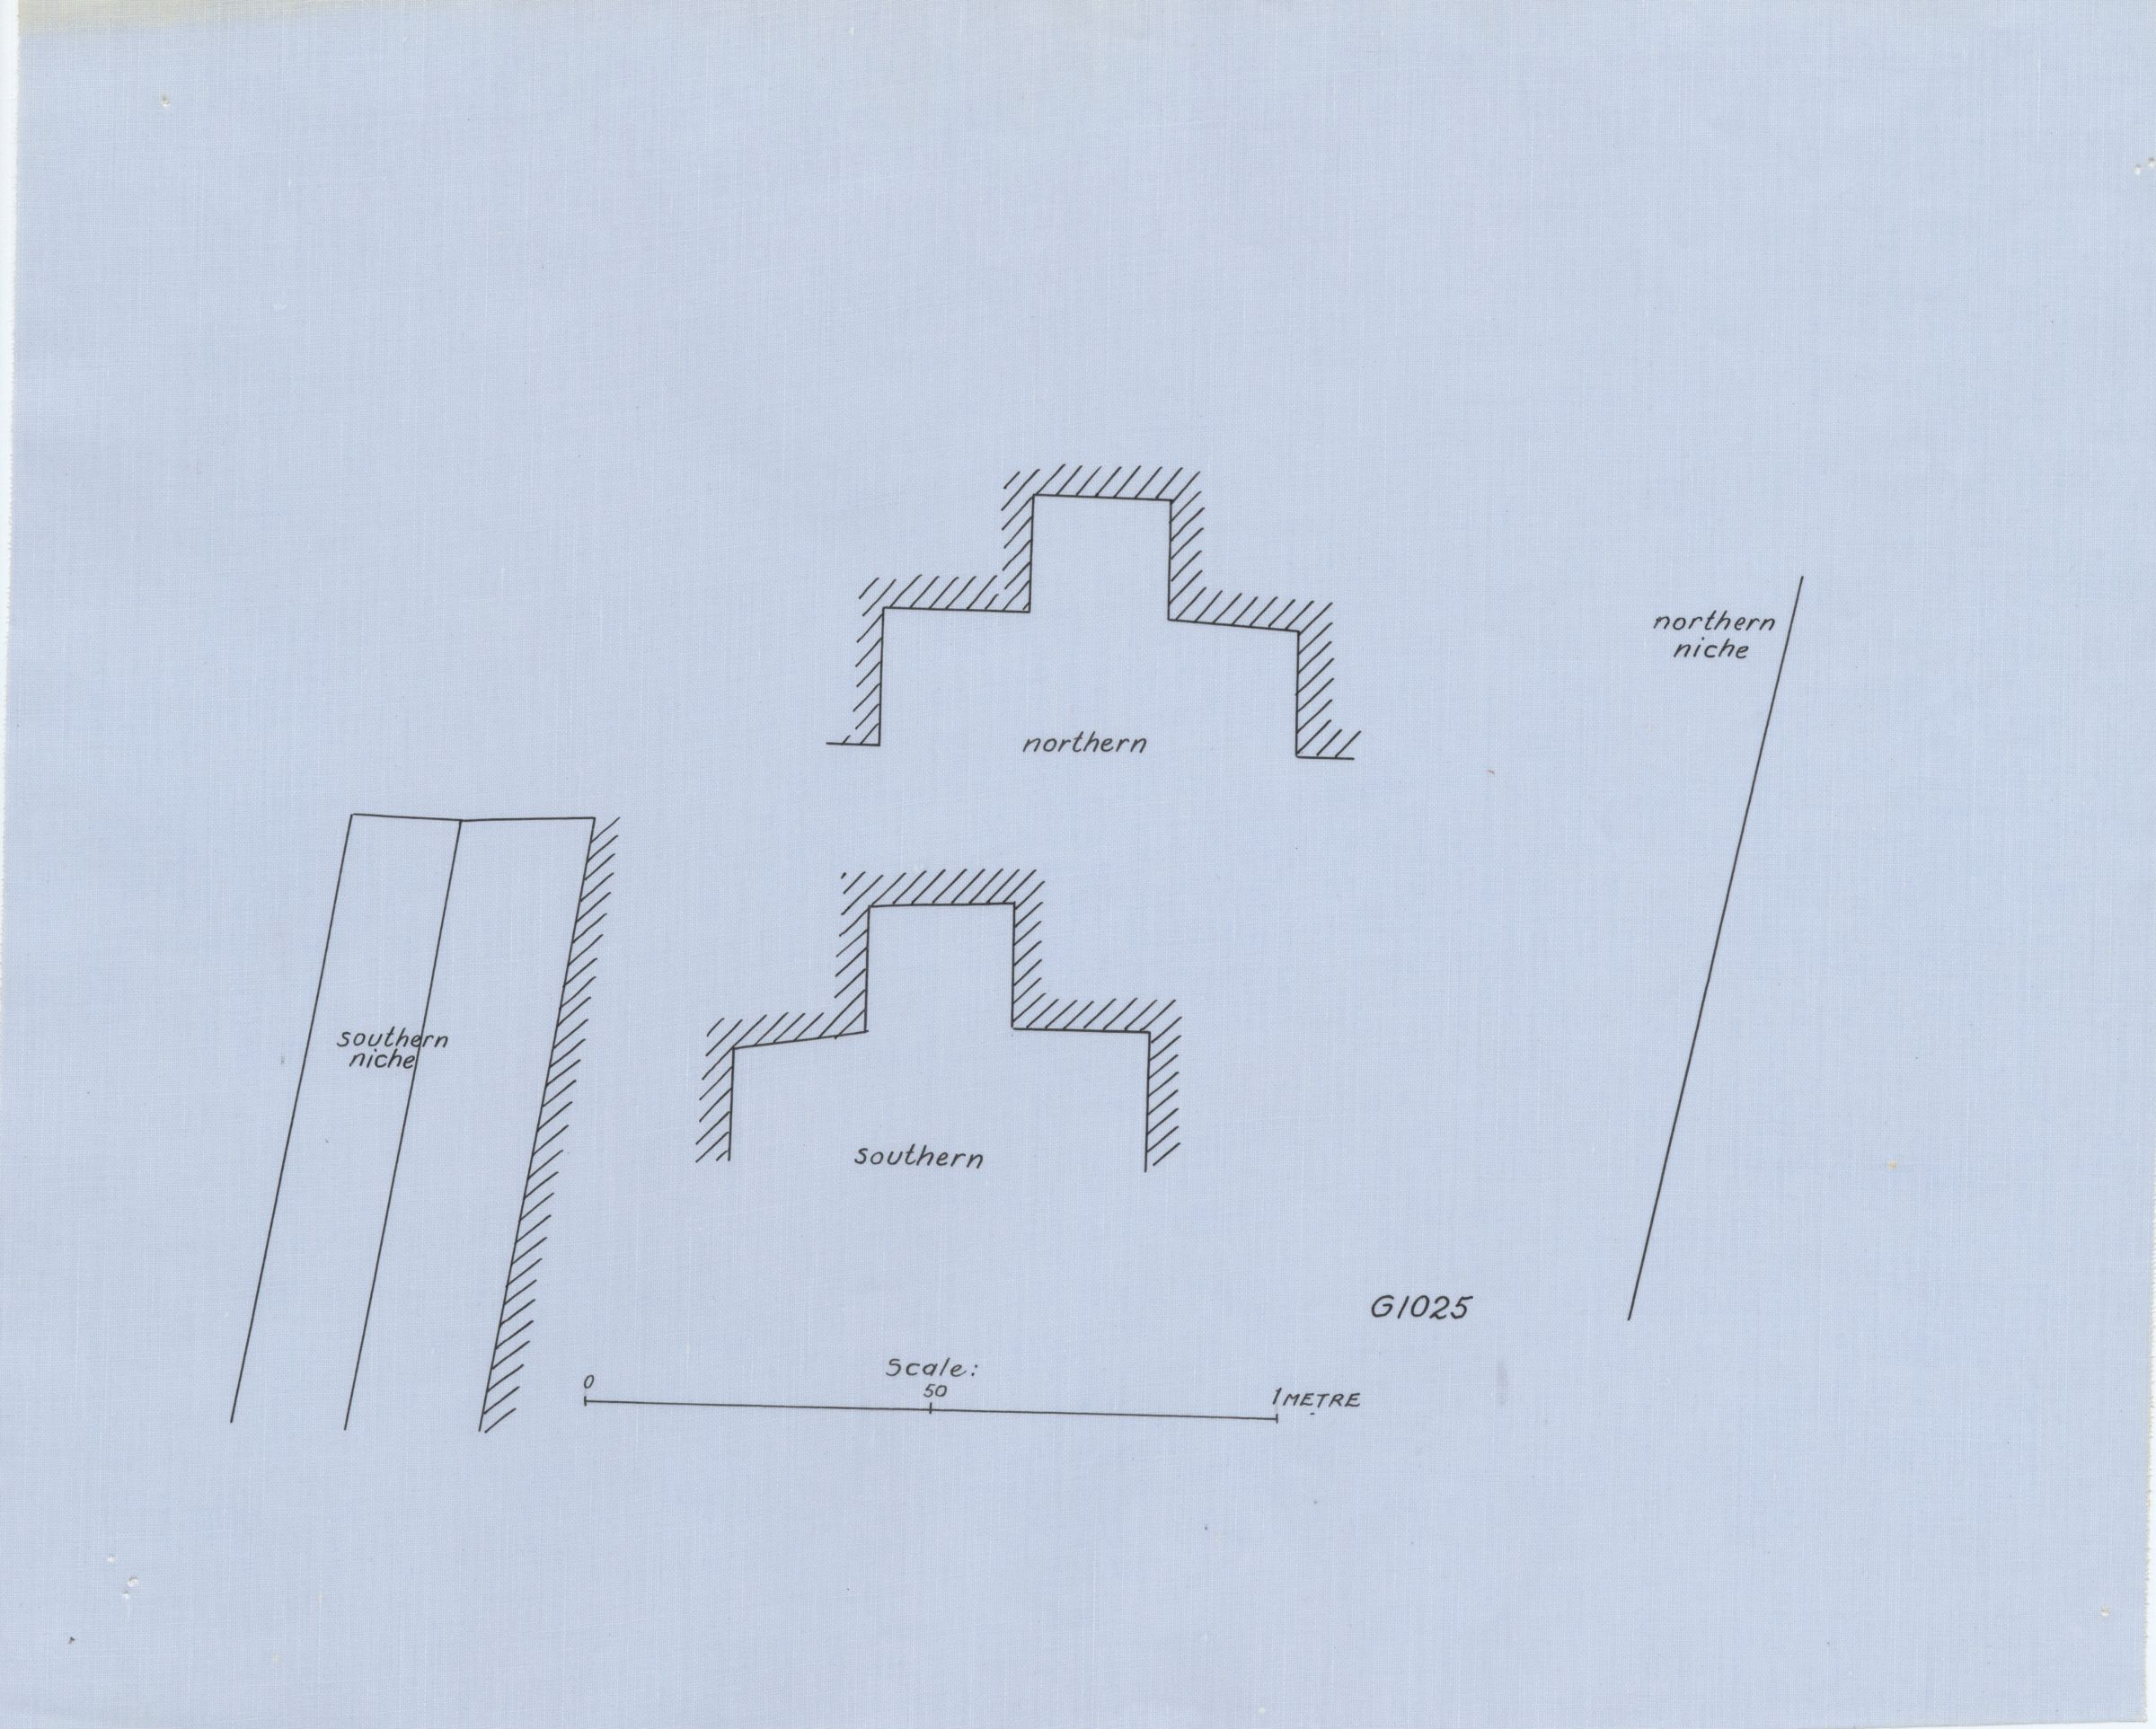 Maps and plans: G 1025, Plan and section of north and south niches